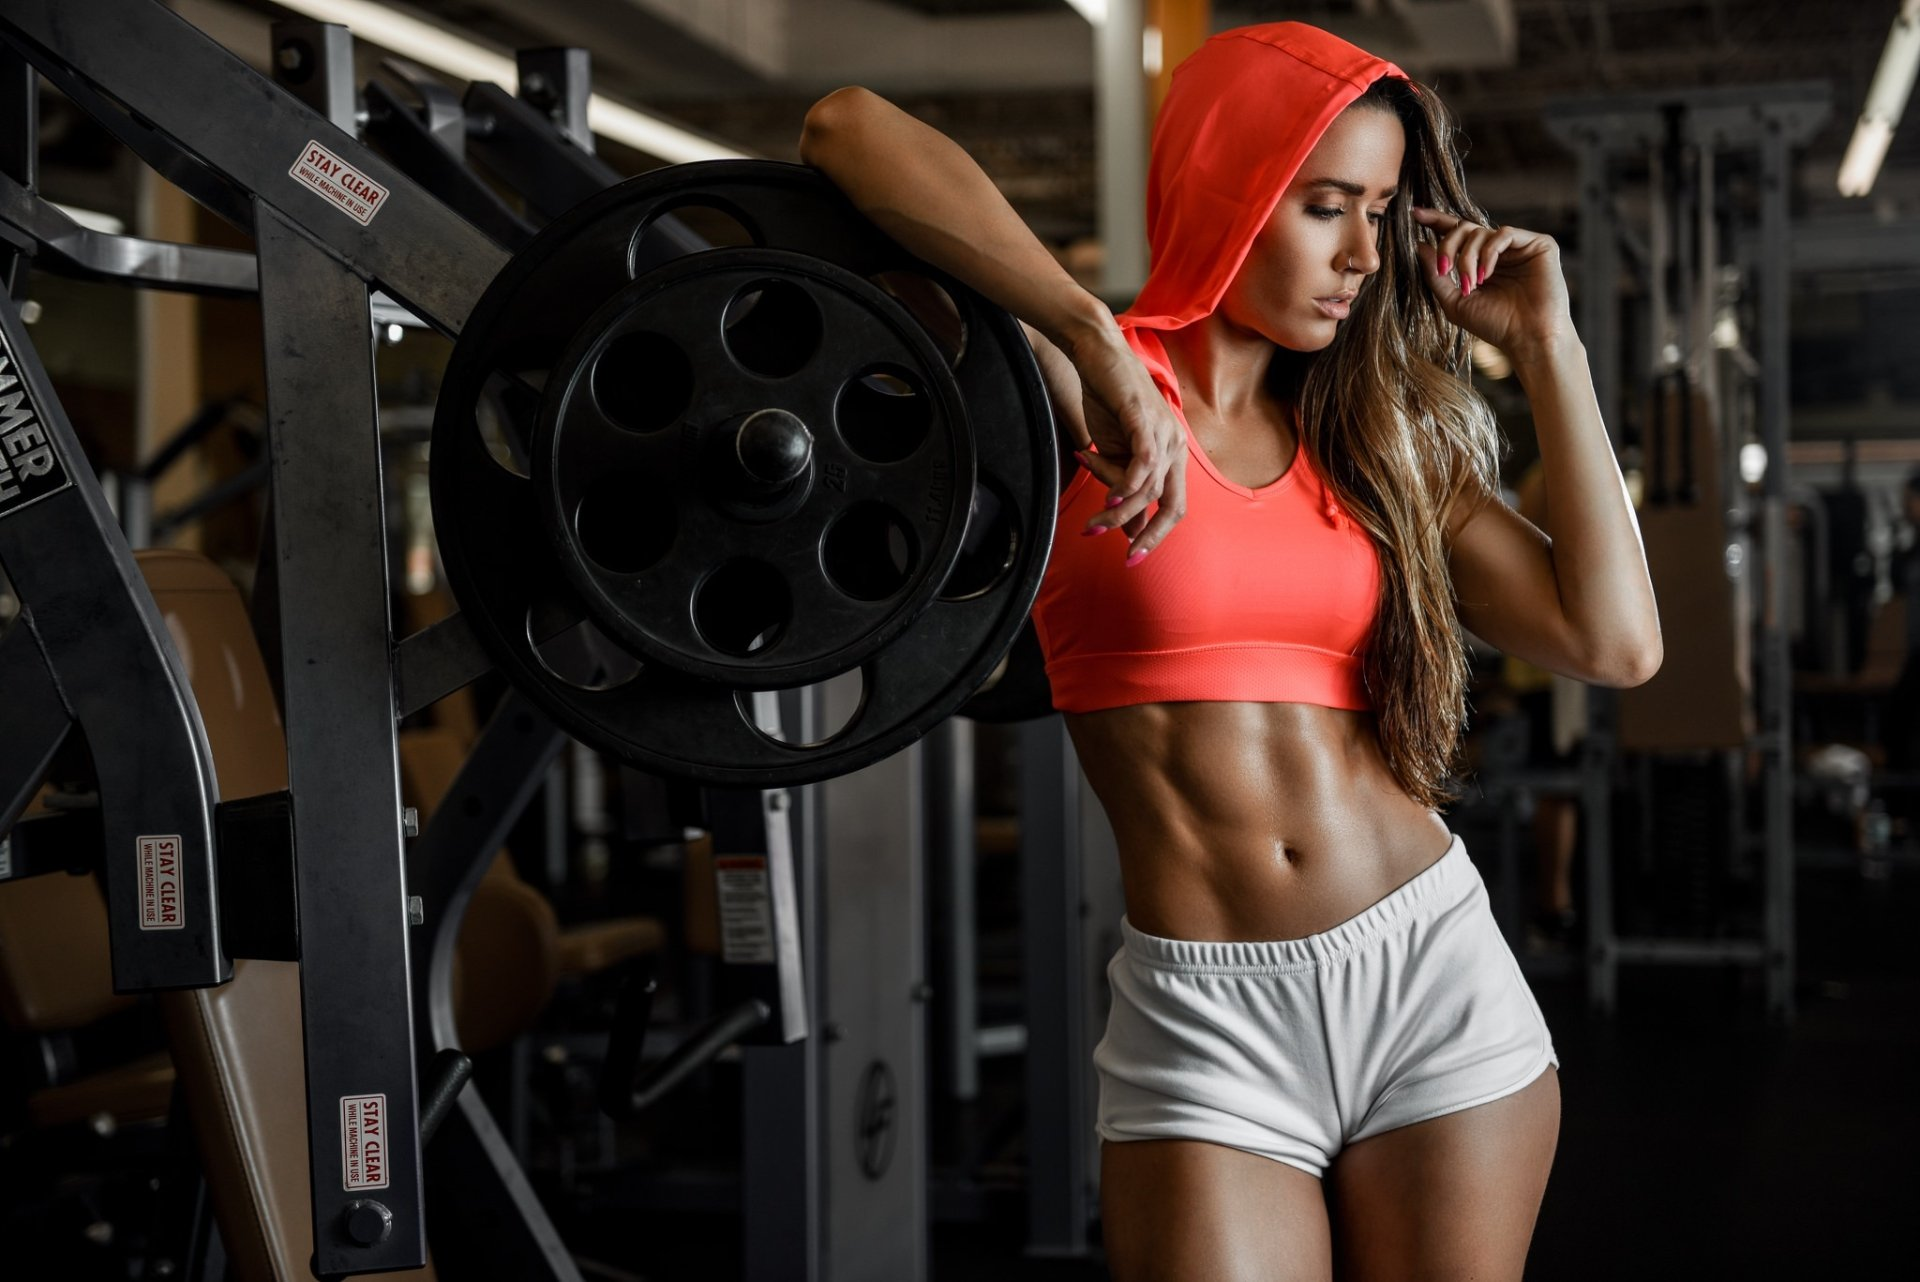 Fit Girl at Gym Pictures Background